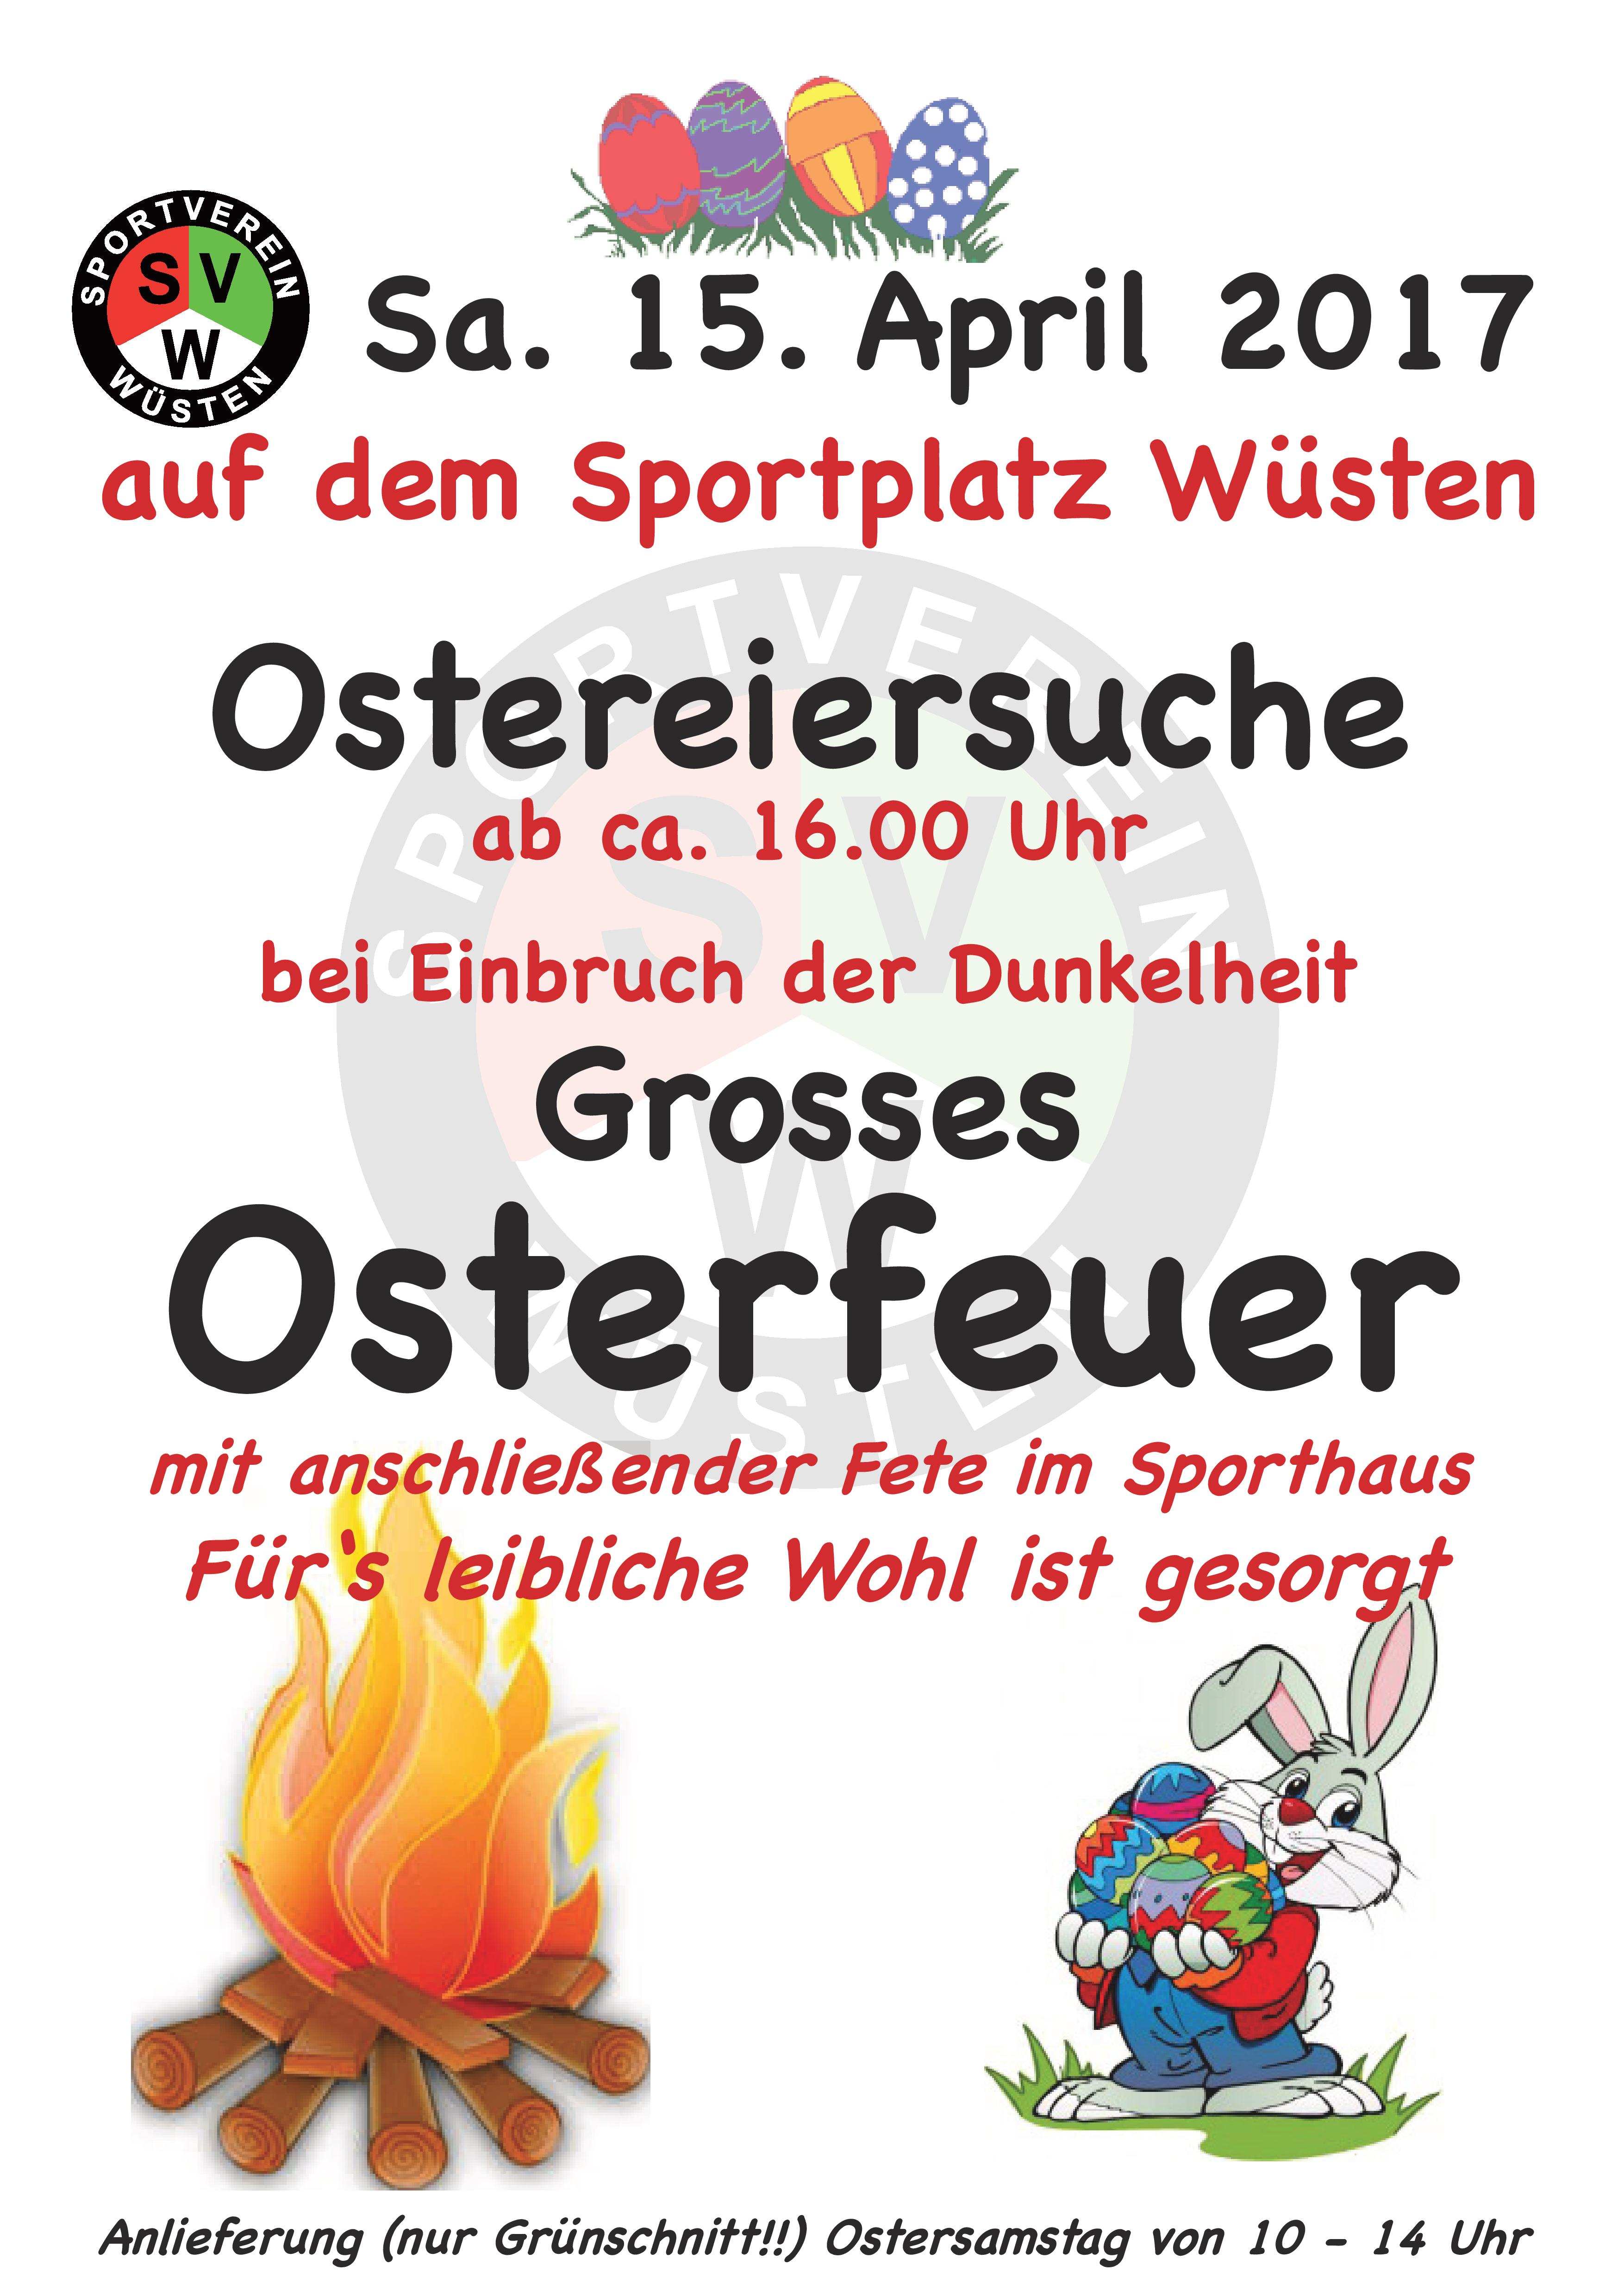 osterfeuer 2017 20170328 1493205828